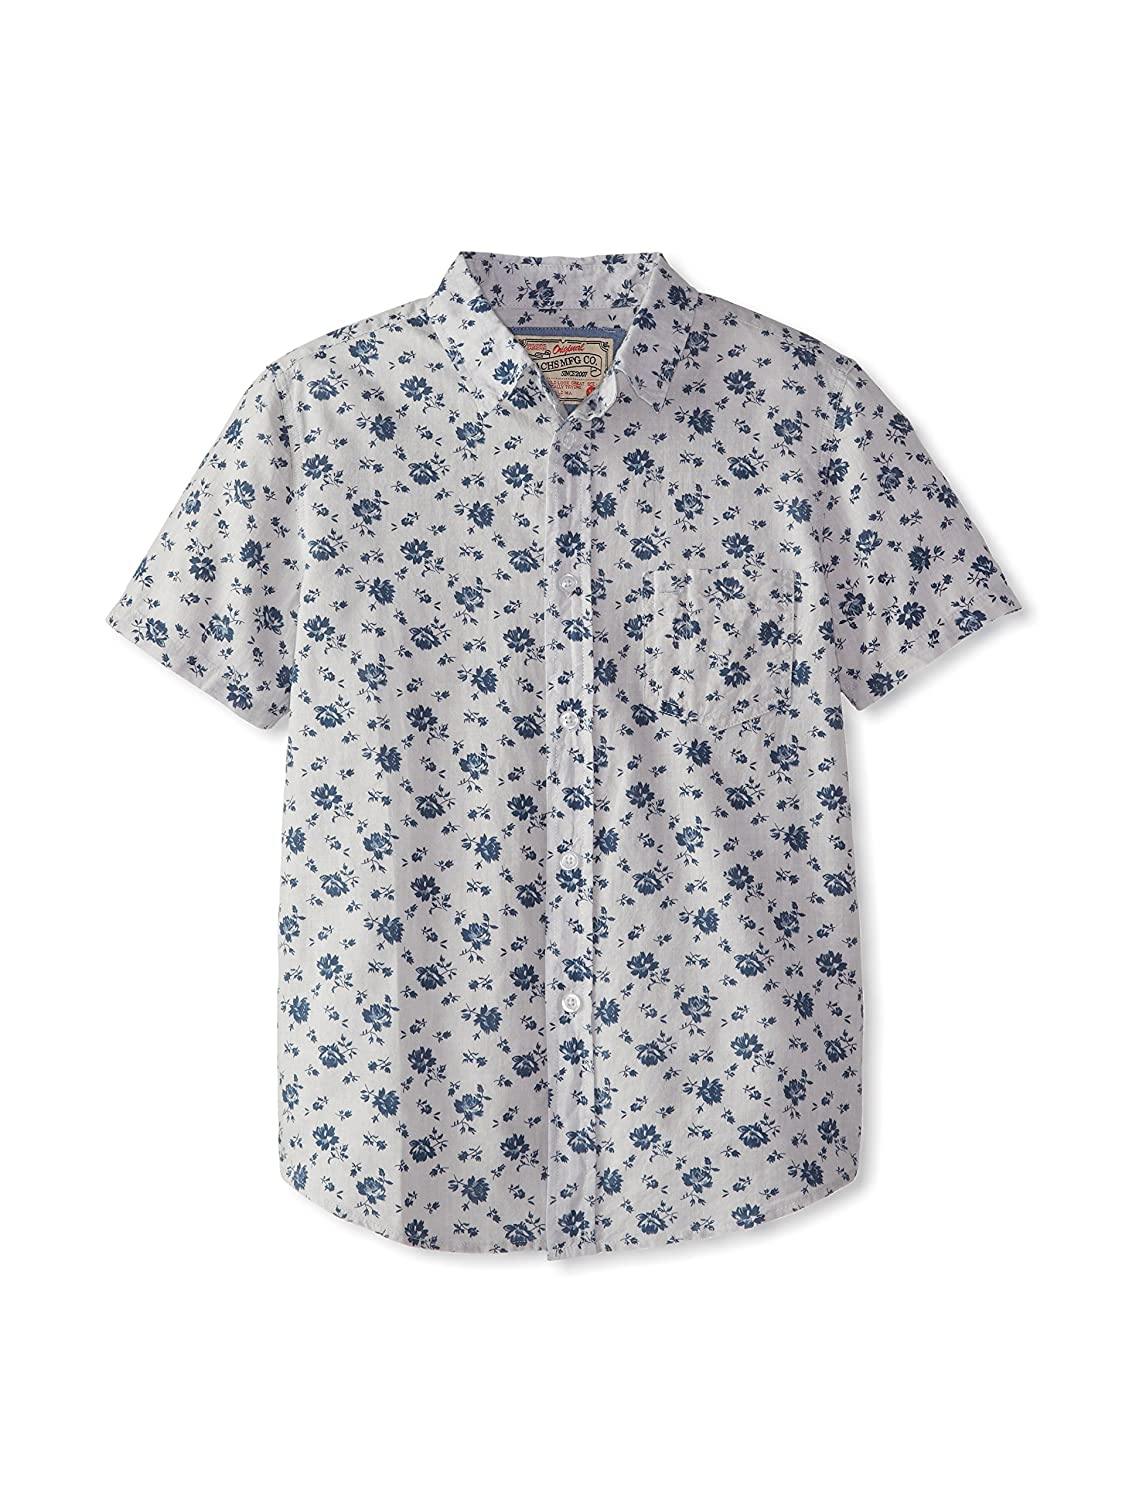 Jachs Big Boys Button Down Floral Grey size 4 Short Sleeve